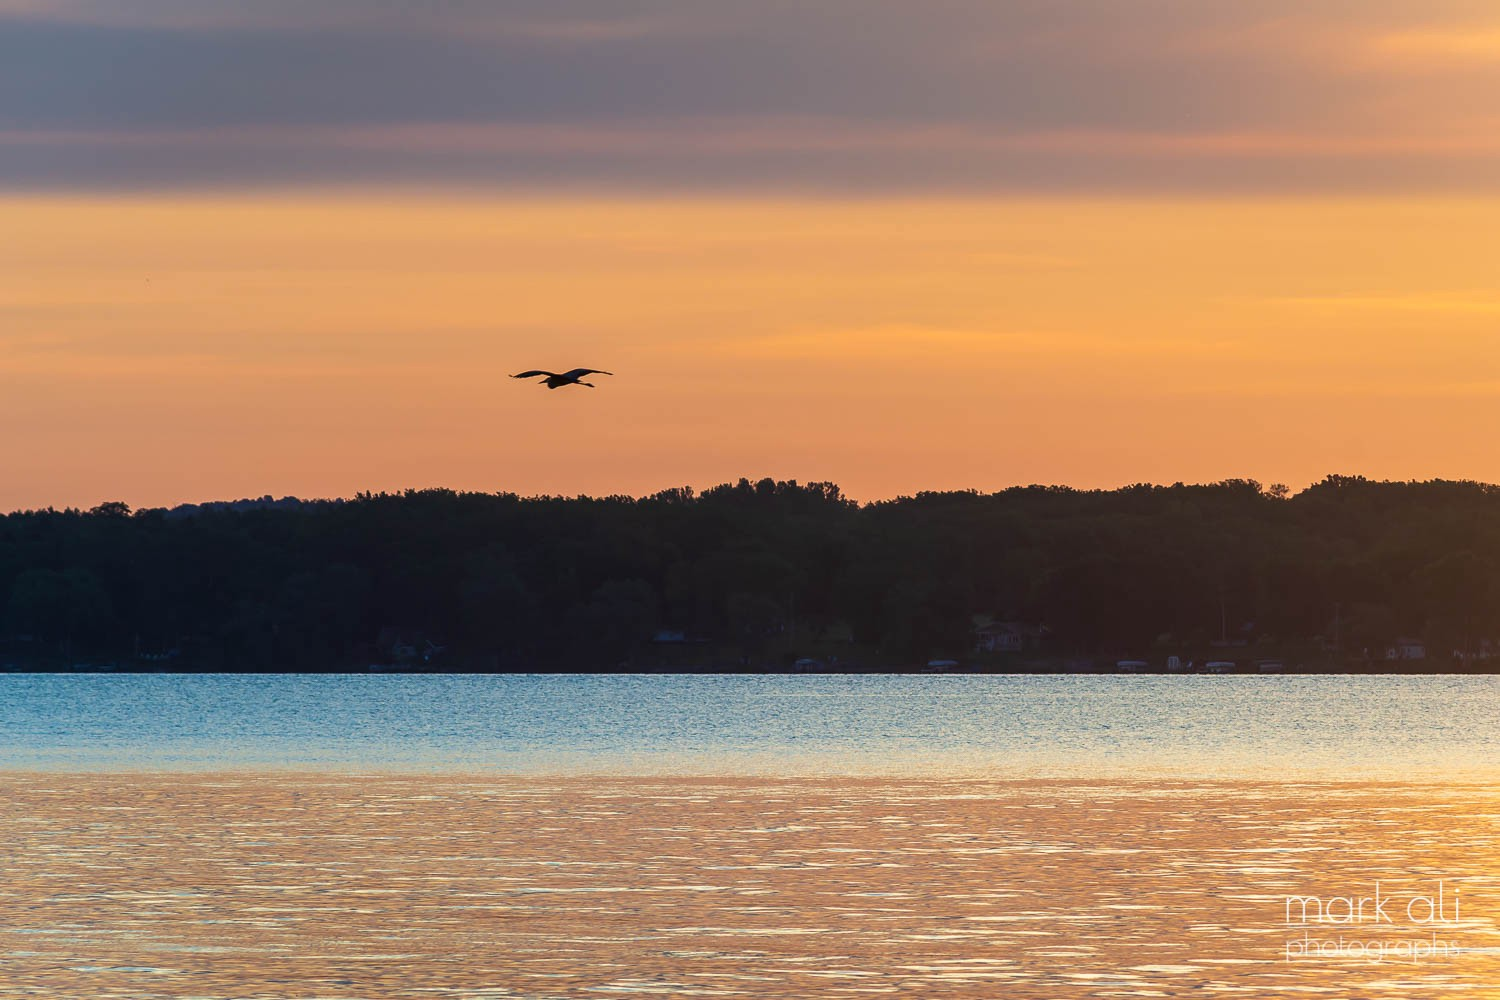 A bird flies by an early-morning sky, just before sunrise.